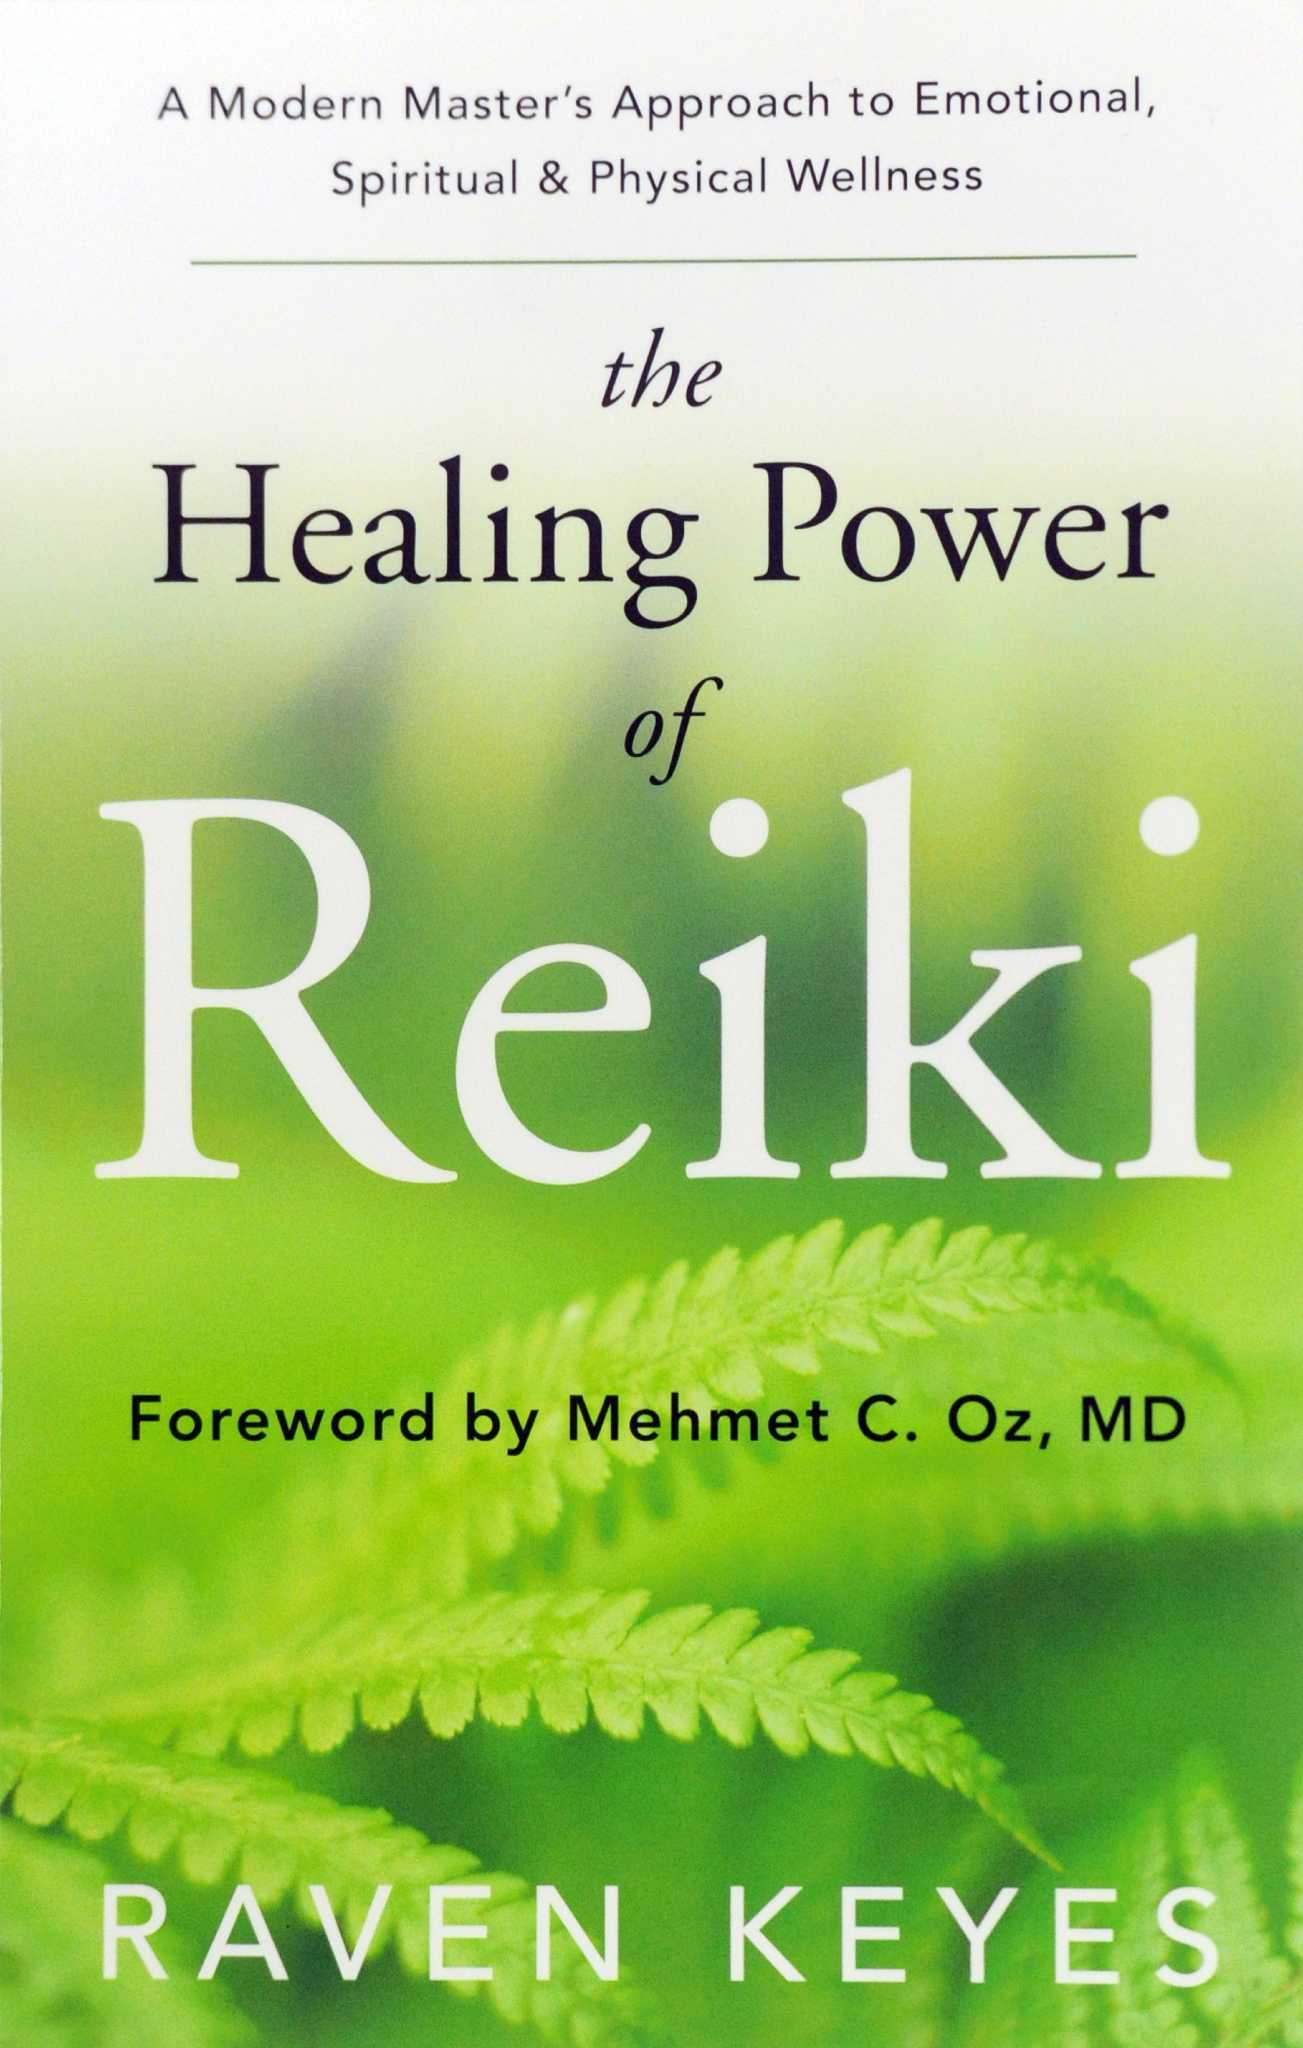 free reiki course - Learn Reiki online: Level 1, 2 and Master